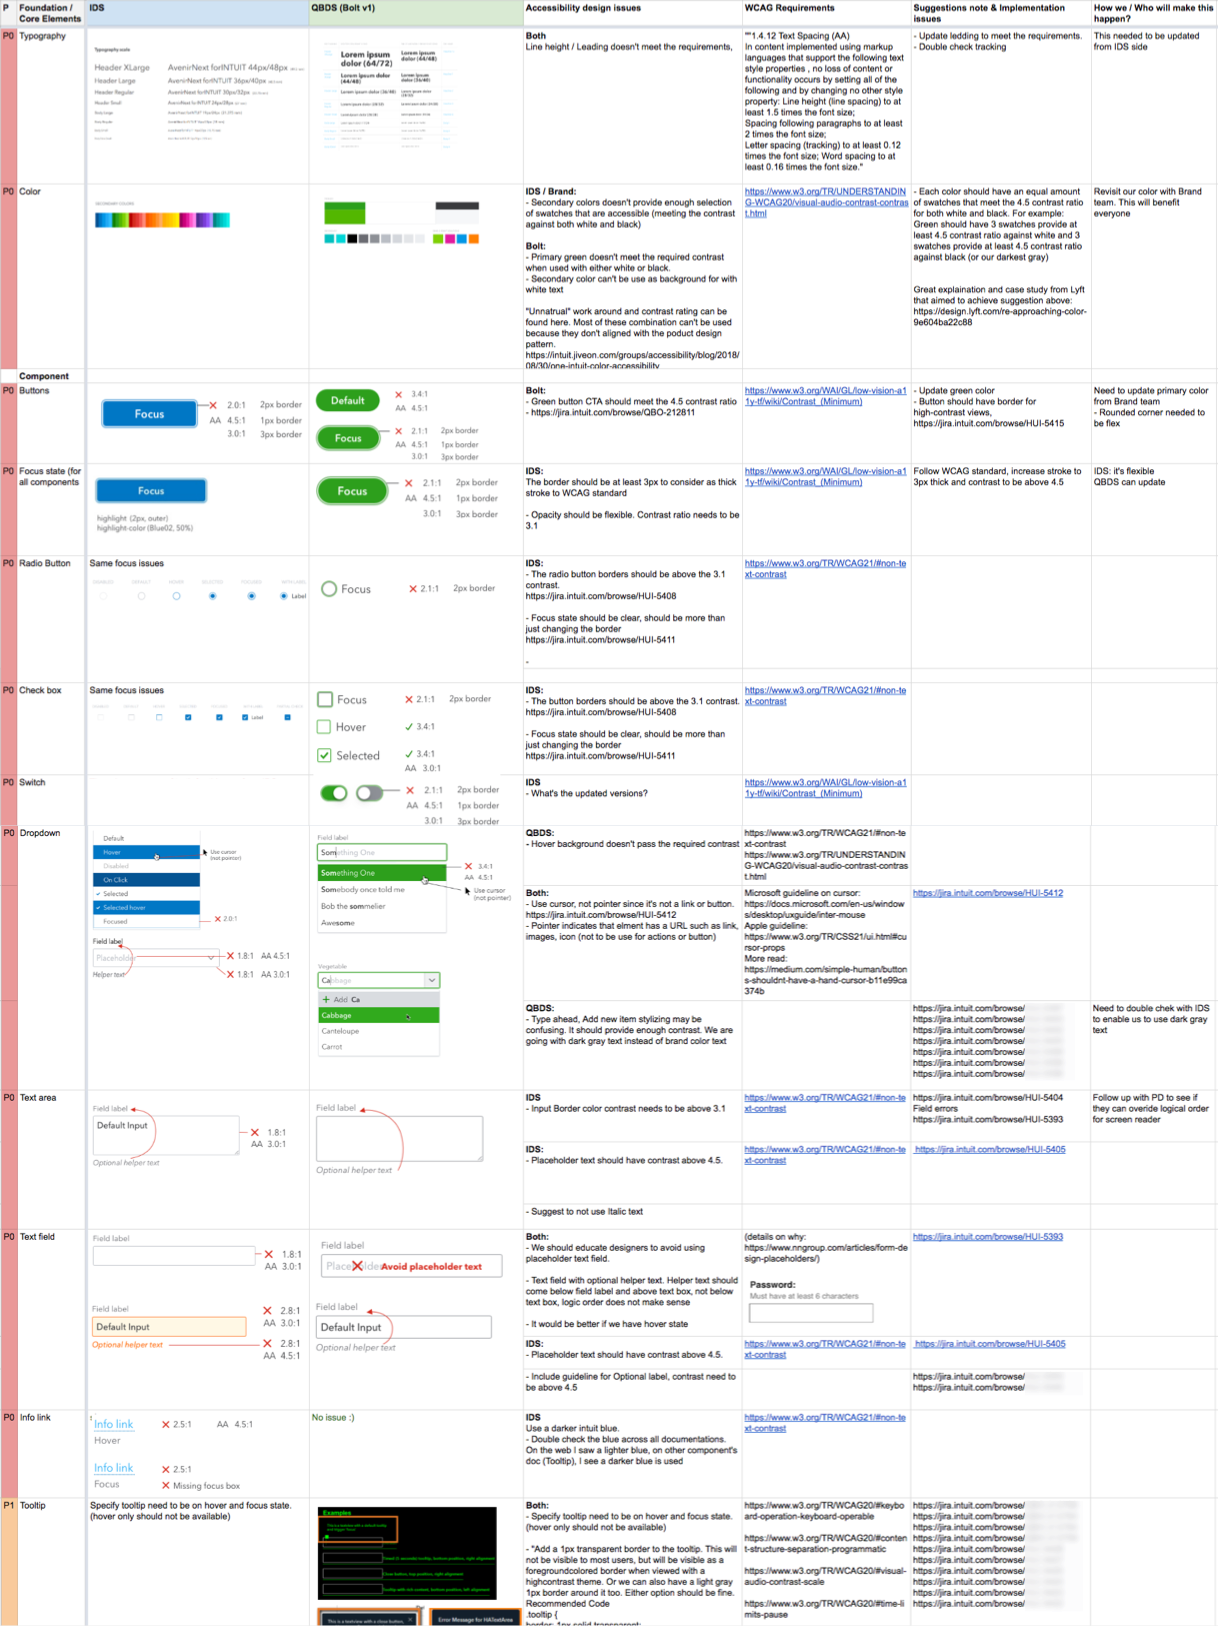 Screenshot of excel audit list with priority rating column, visual issues identified with comments and suggestions